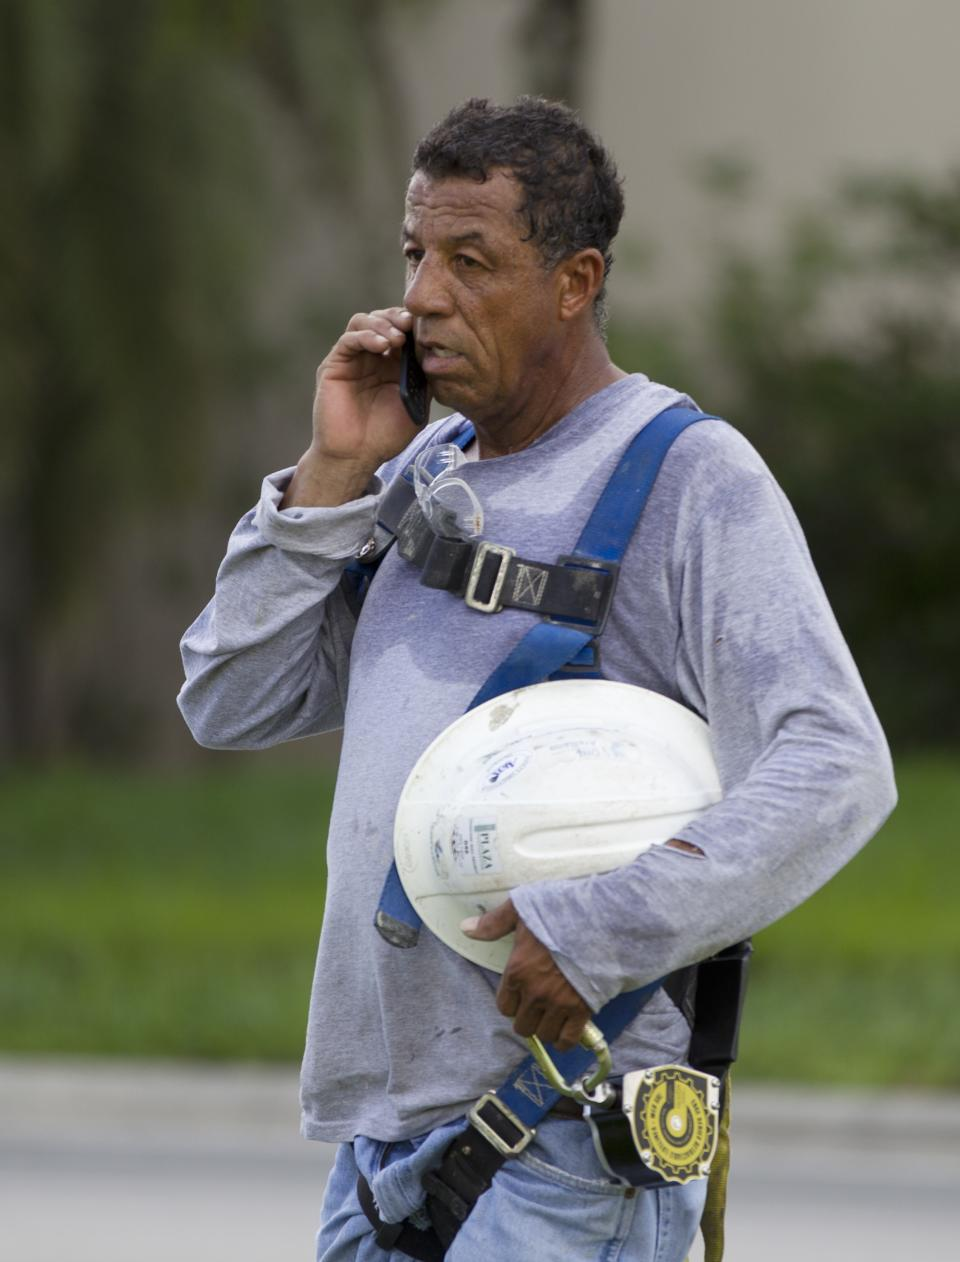 A construction worker talks on a cell phone after a section of a parking garage under construction at a Miami-Dade College campus collapsed, Wednesday, Oct. 10, 2012 in Doral, Fla., killing one worker and trapping at least two others in the rubble, officials said. (AP Photo/J Pat Carter)